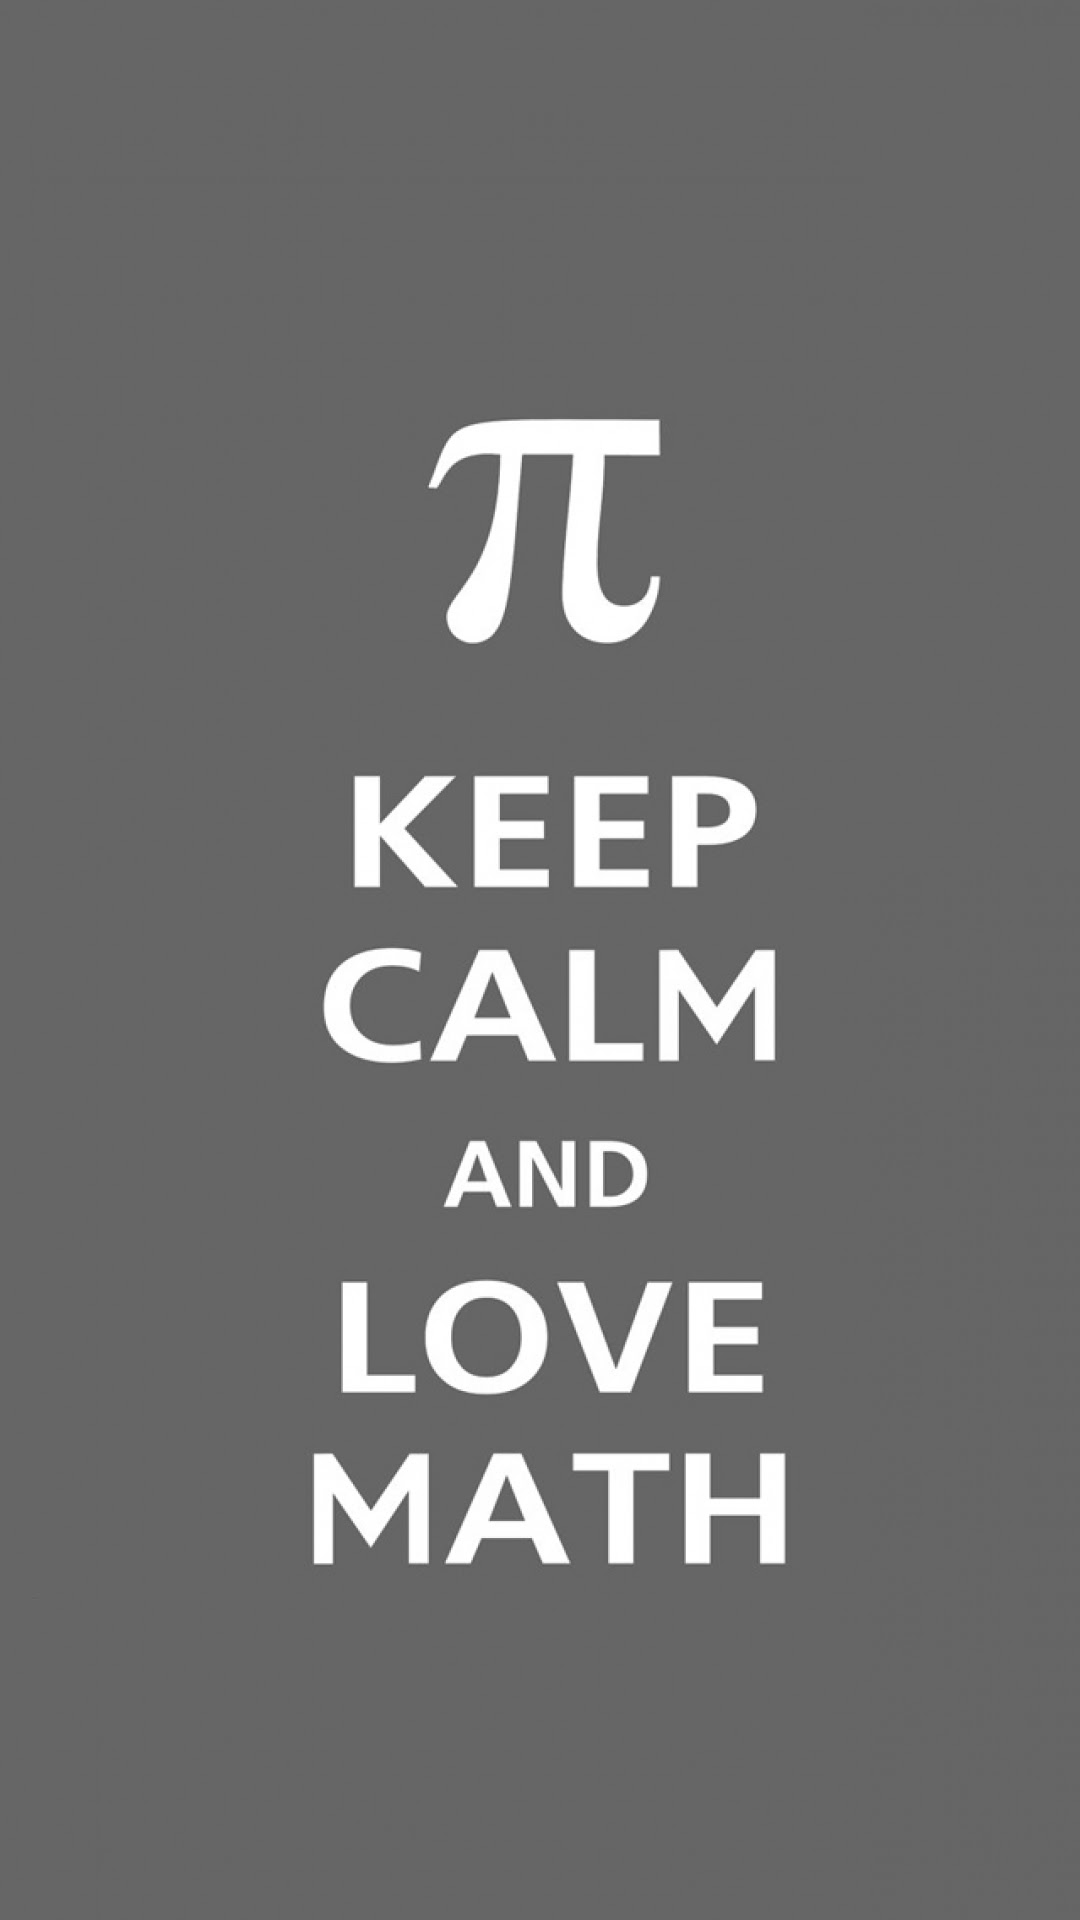 android best wallpapers: pi keep calm and love math typography